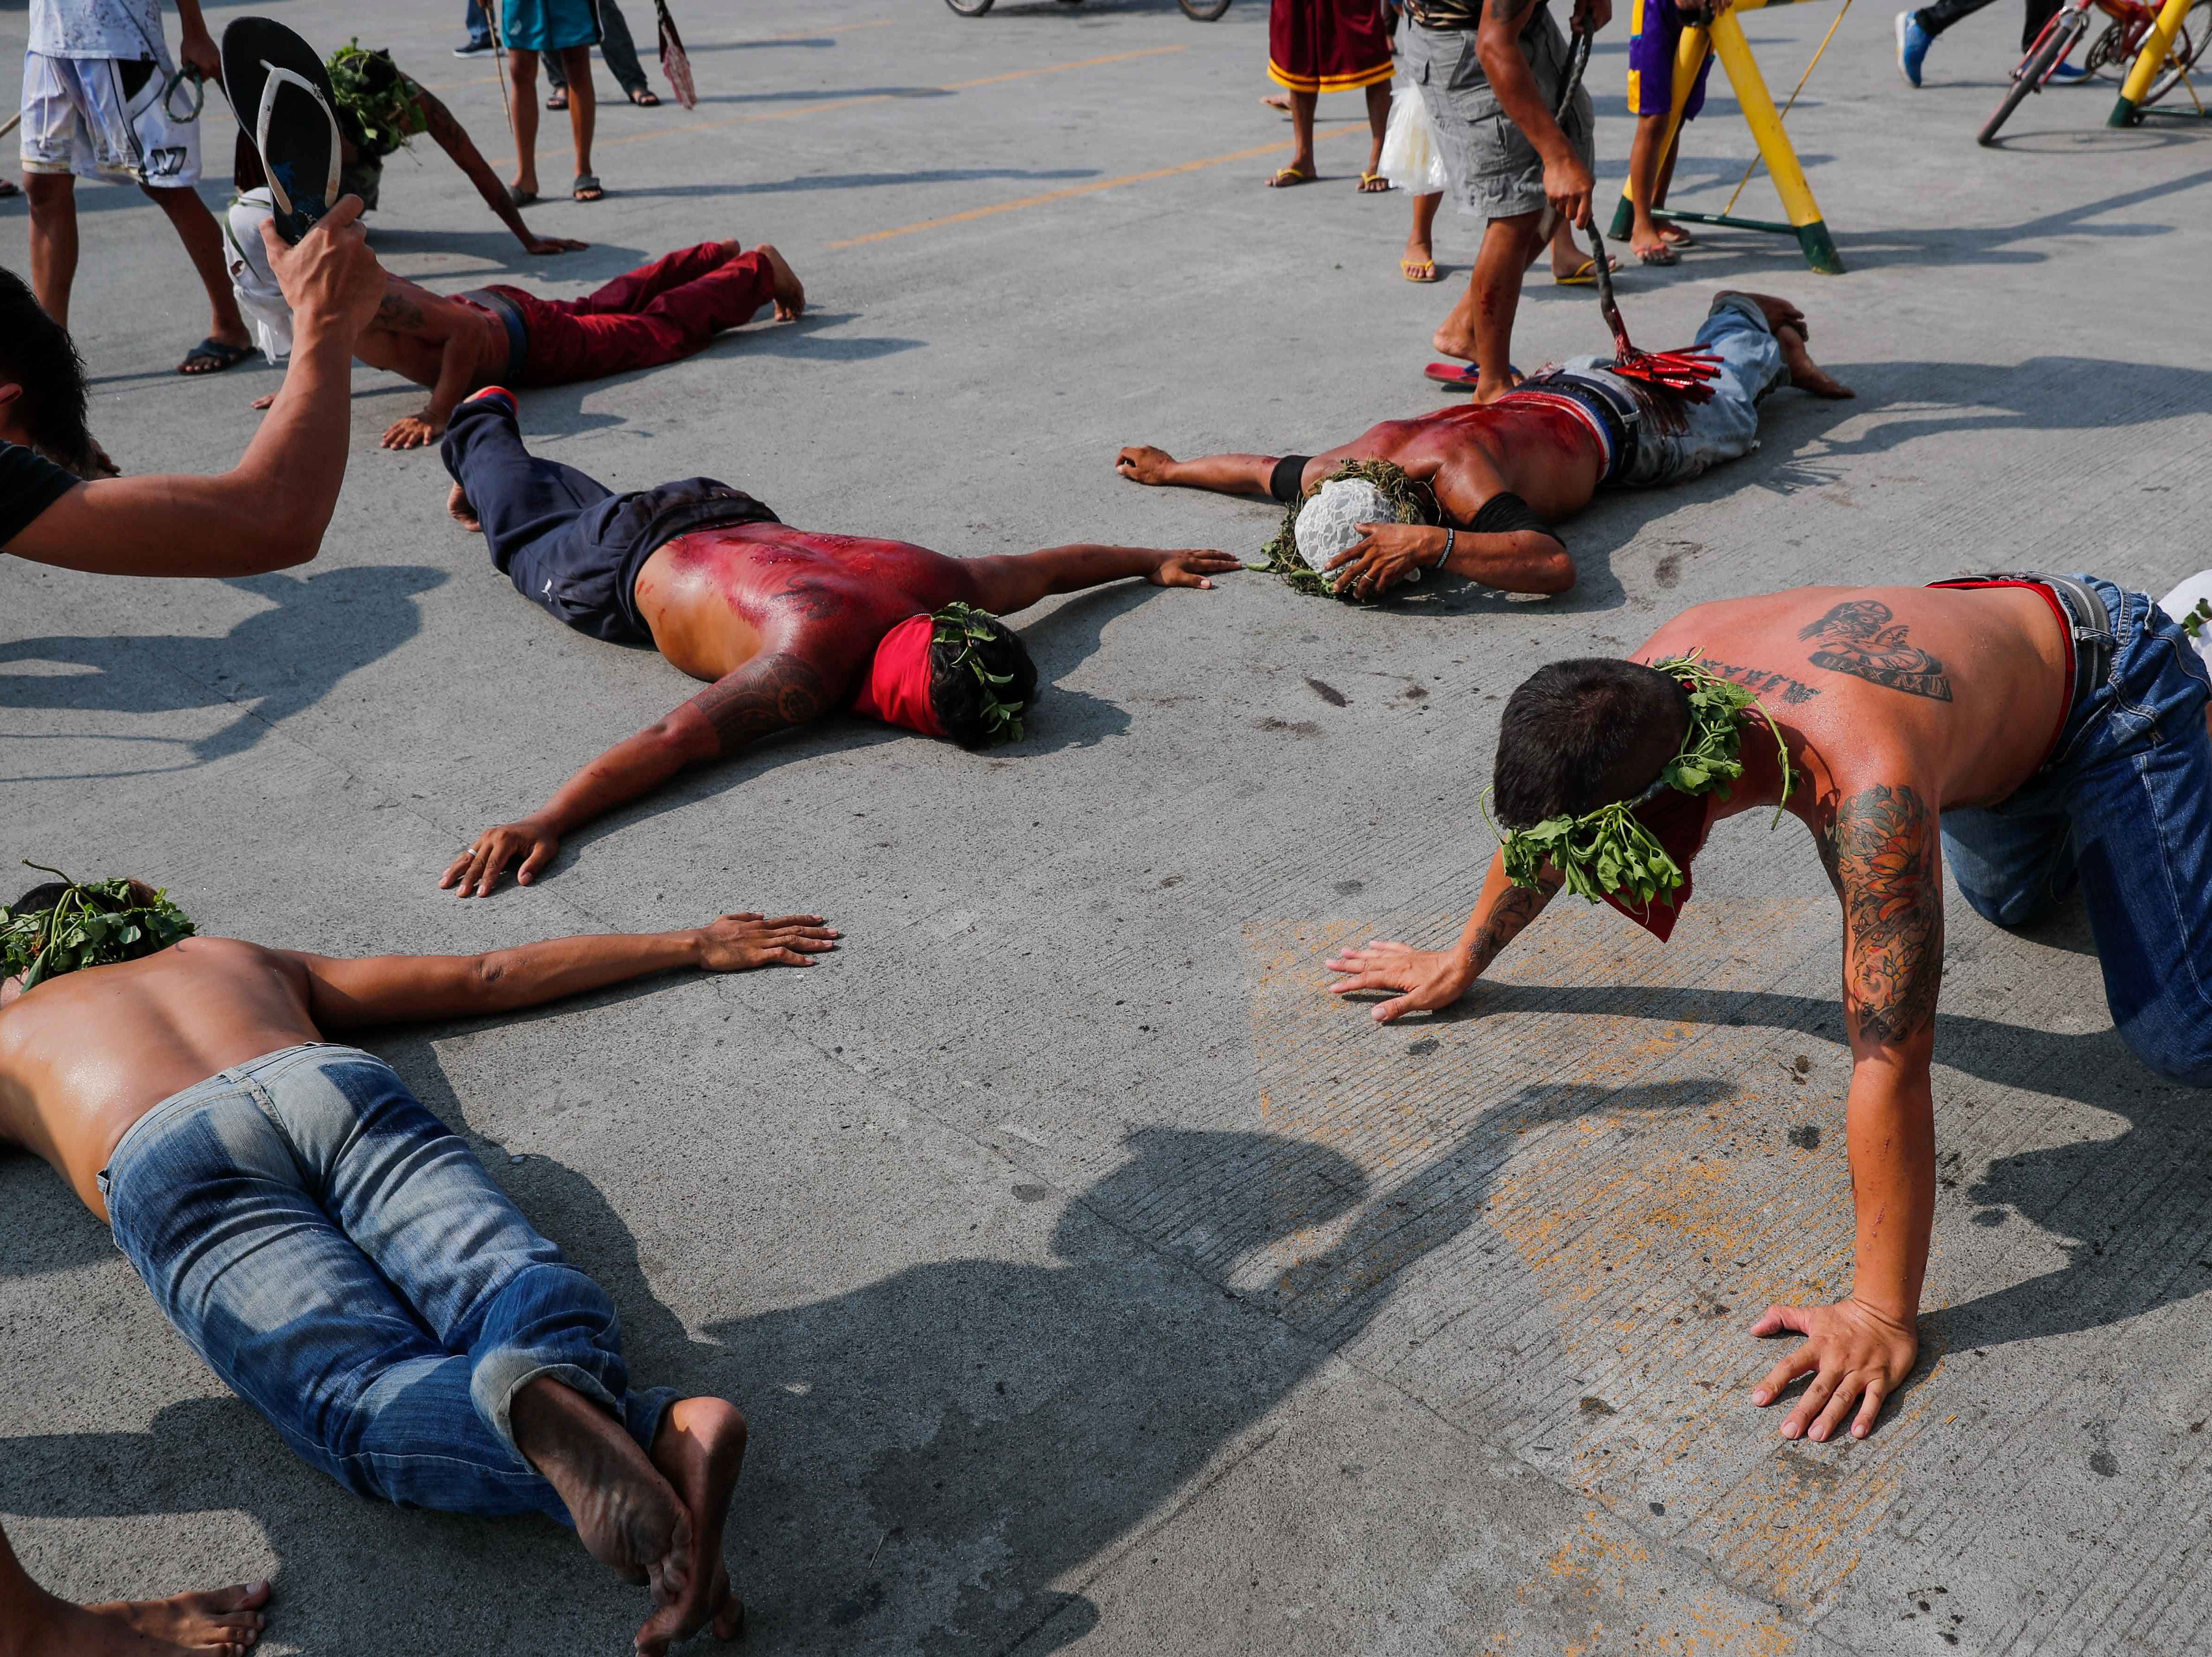 Flagellants are whipped in front of a church on Maundy Thursday in San Fernando, Pampanga province, Philippines on April 18, 2019. Many Filipino Catholic penitents mark the Holy Week by submitting to different forms of physical penance in the hopes of being forgiven for their sins.